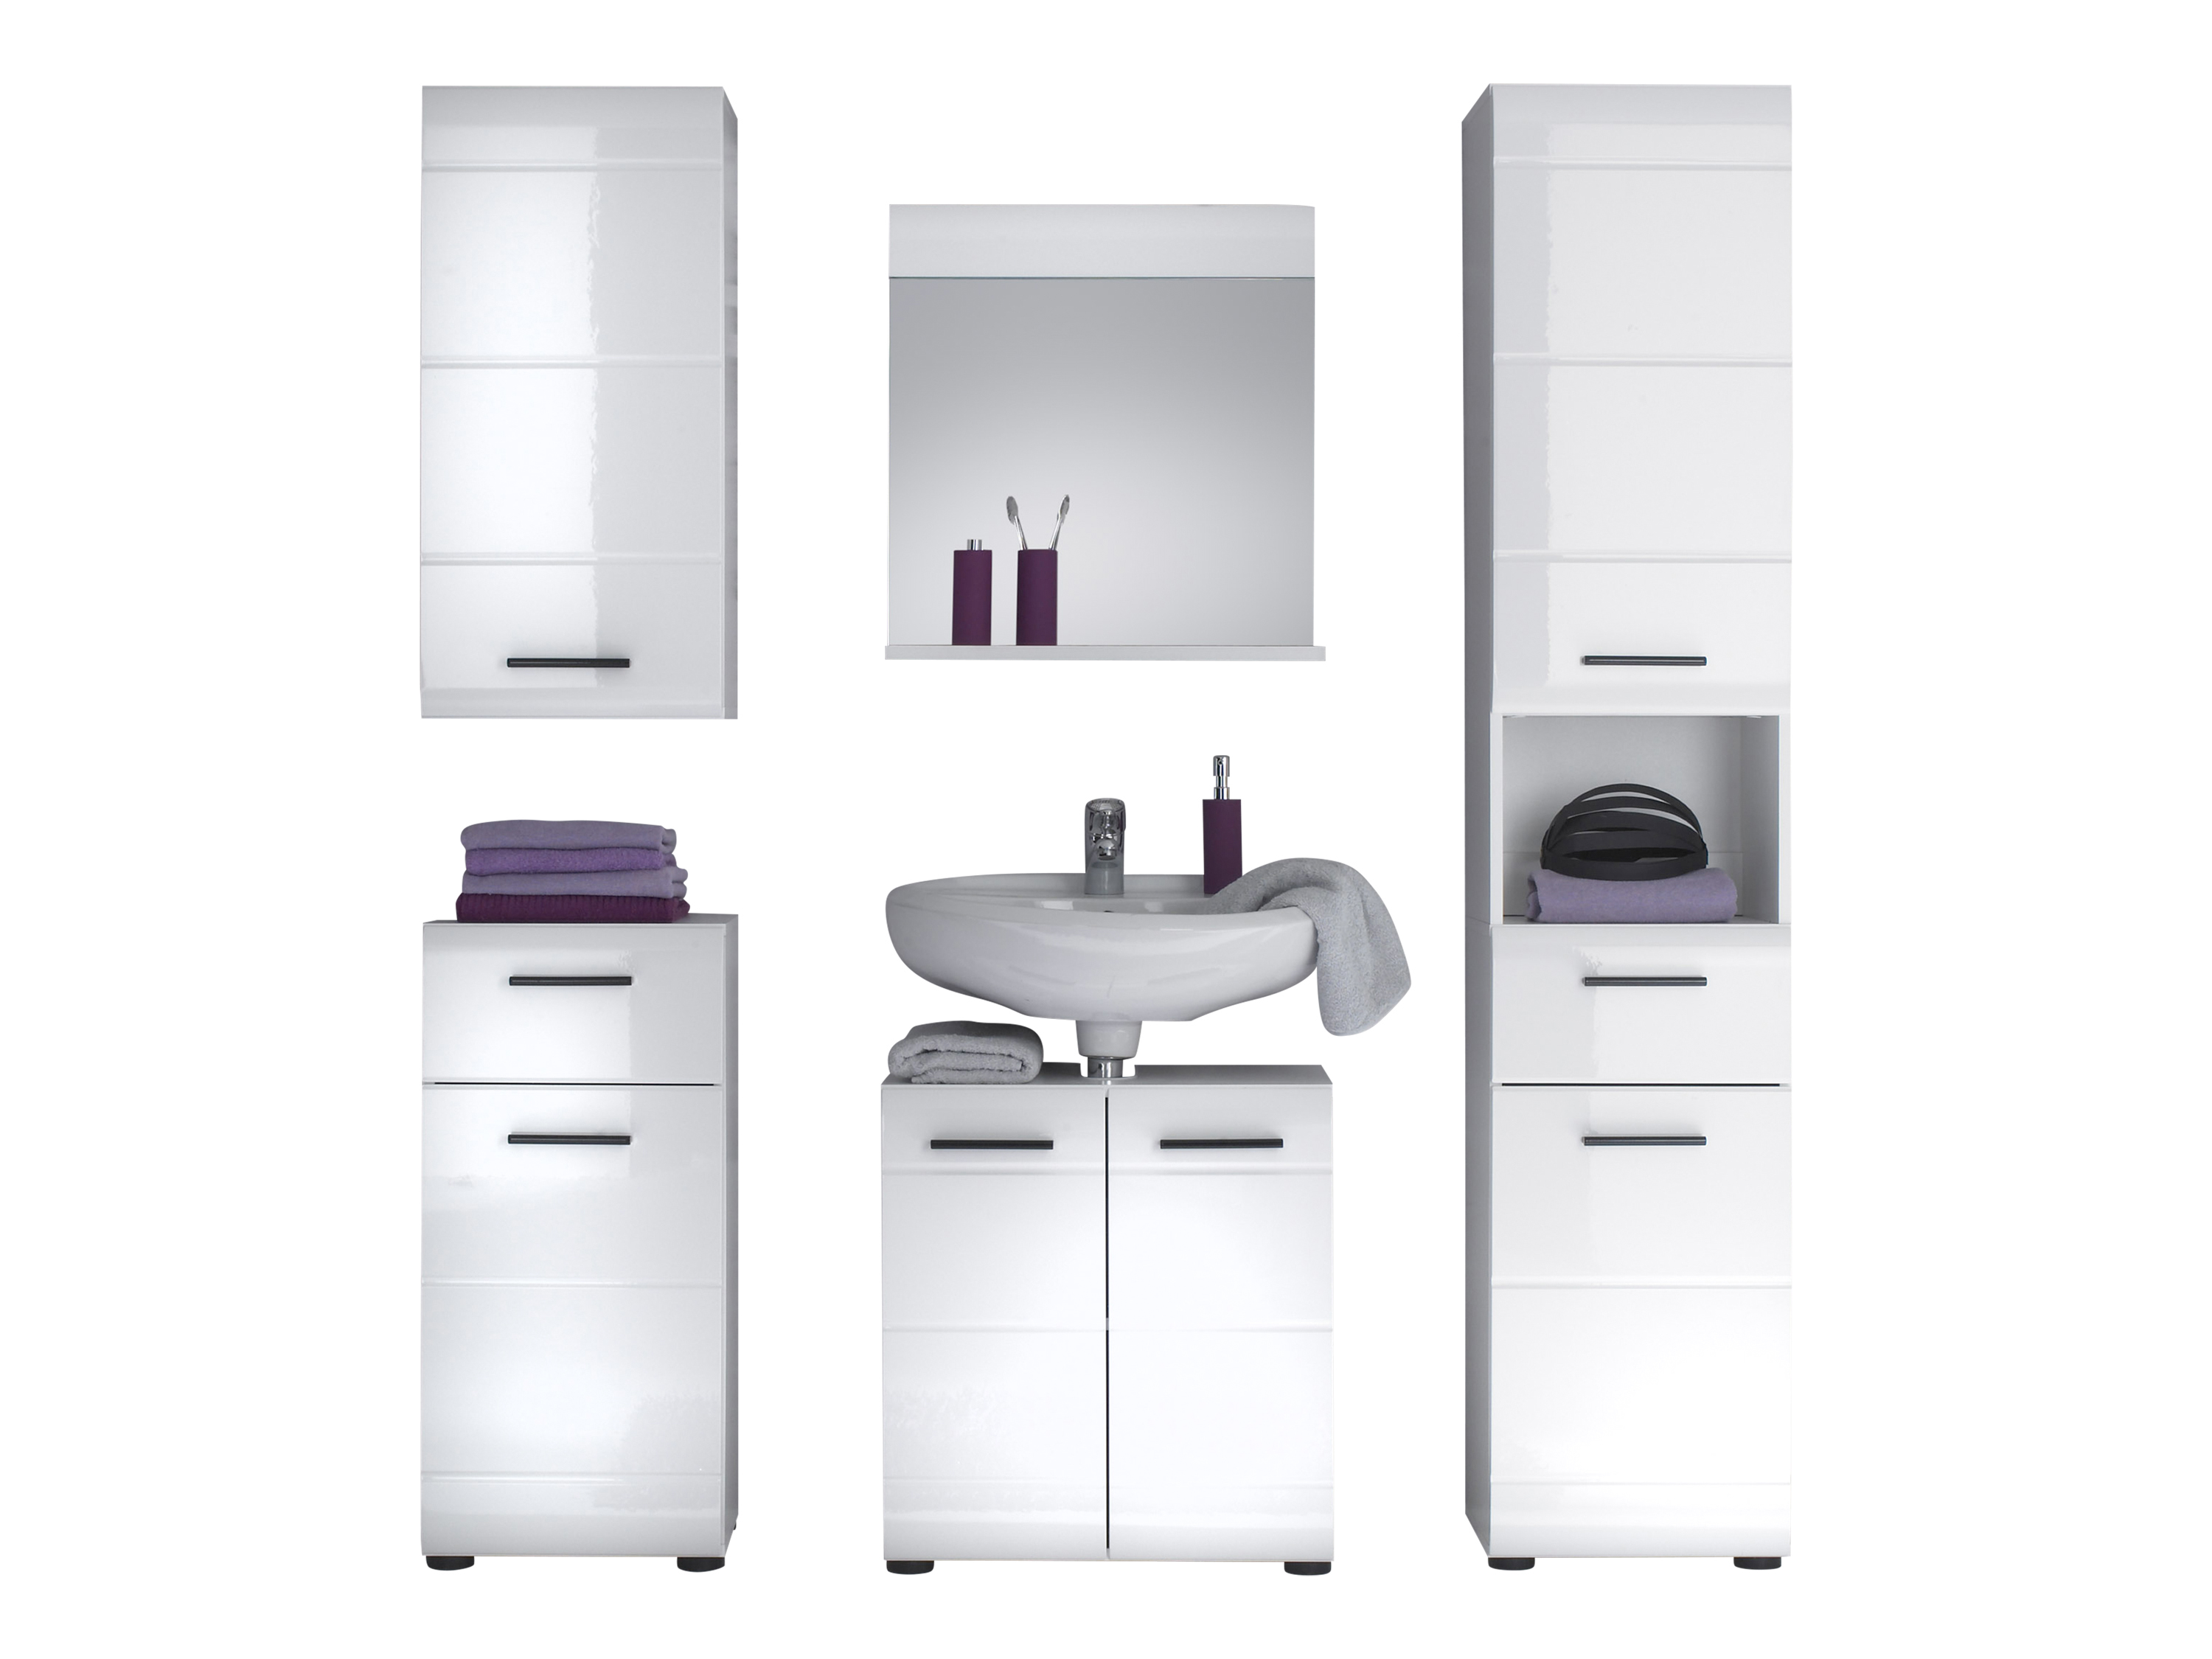 stauraumschrank weiss hochglanz 2 t ren ebay. Black Bedroom Furniture Sets. Home Design Ideas